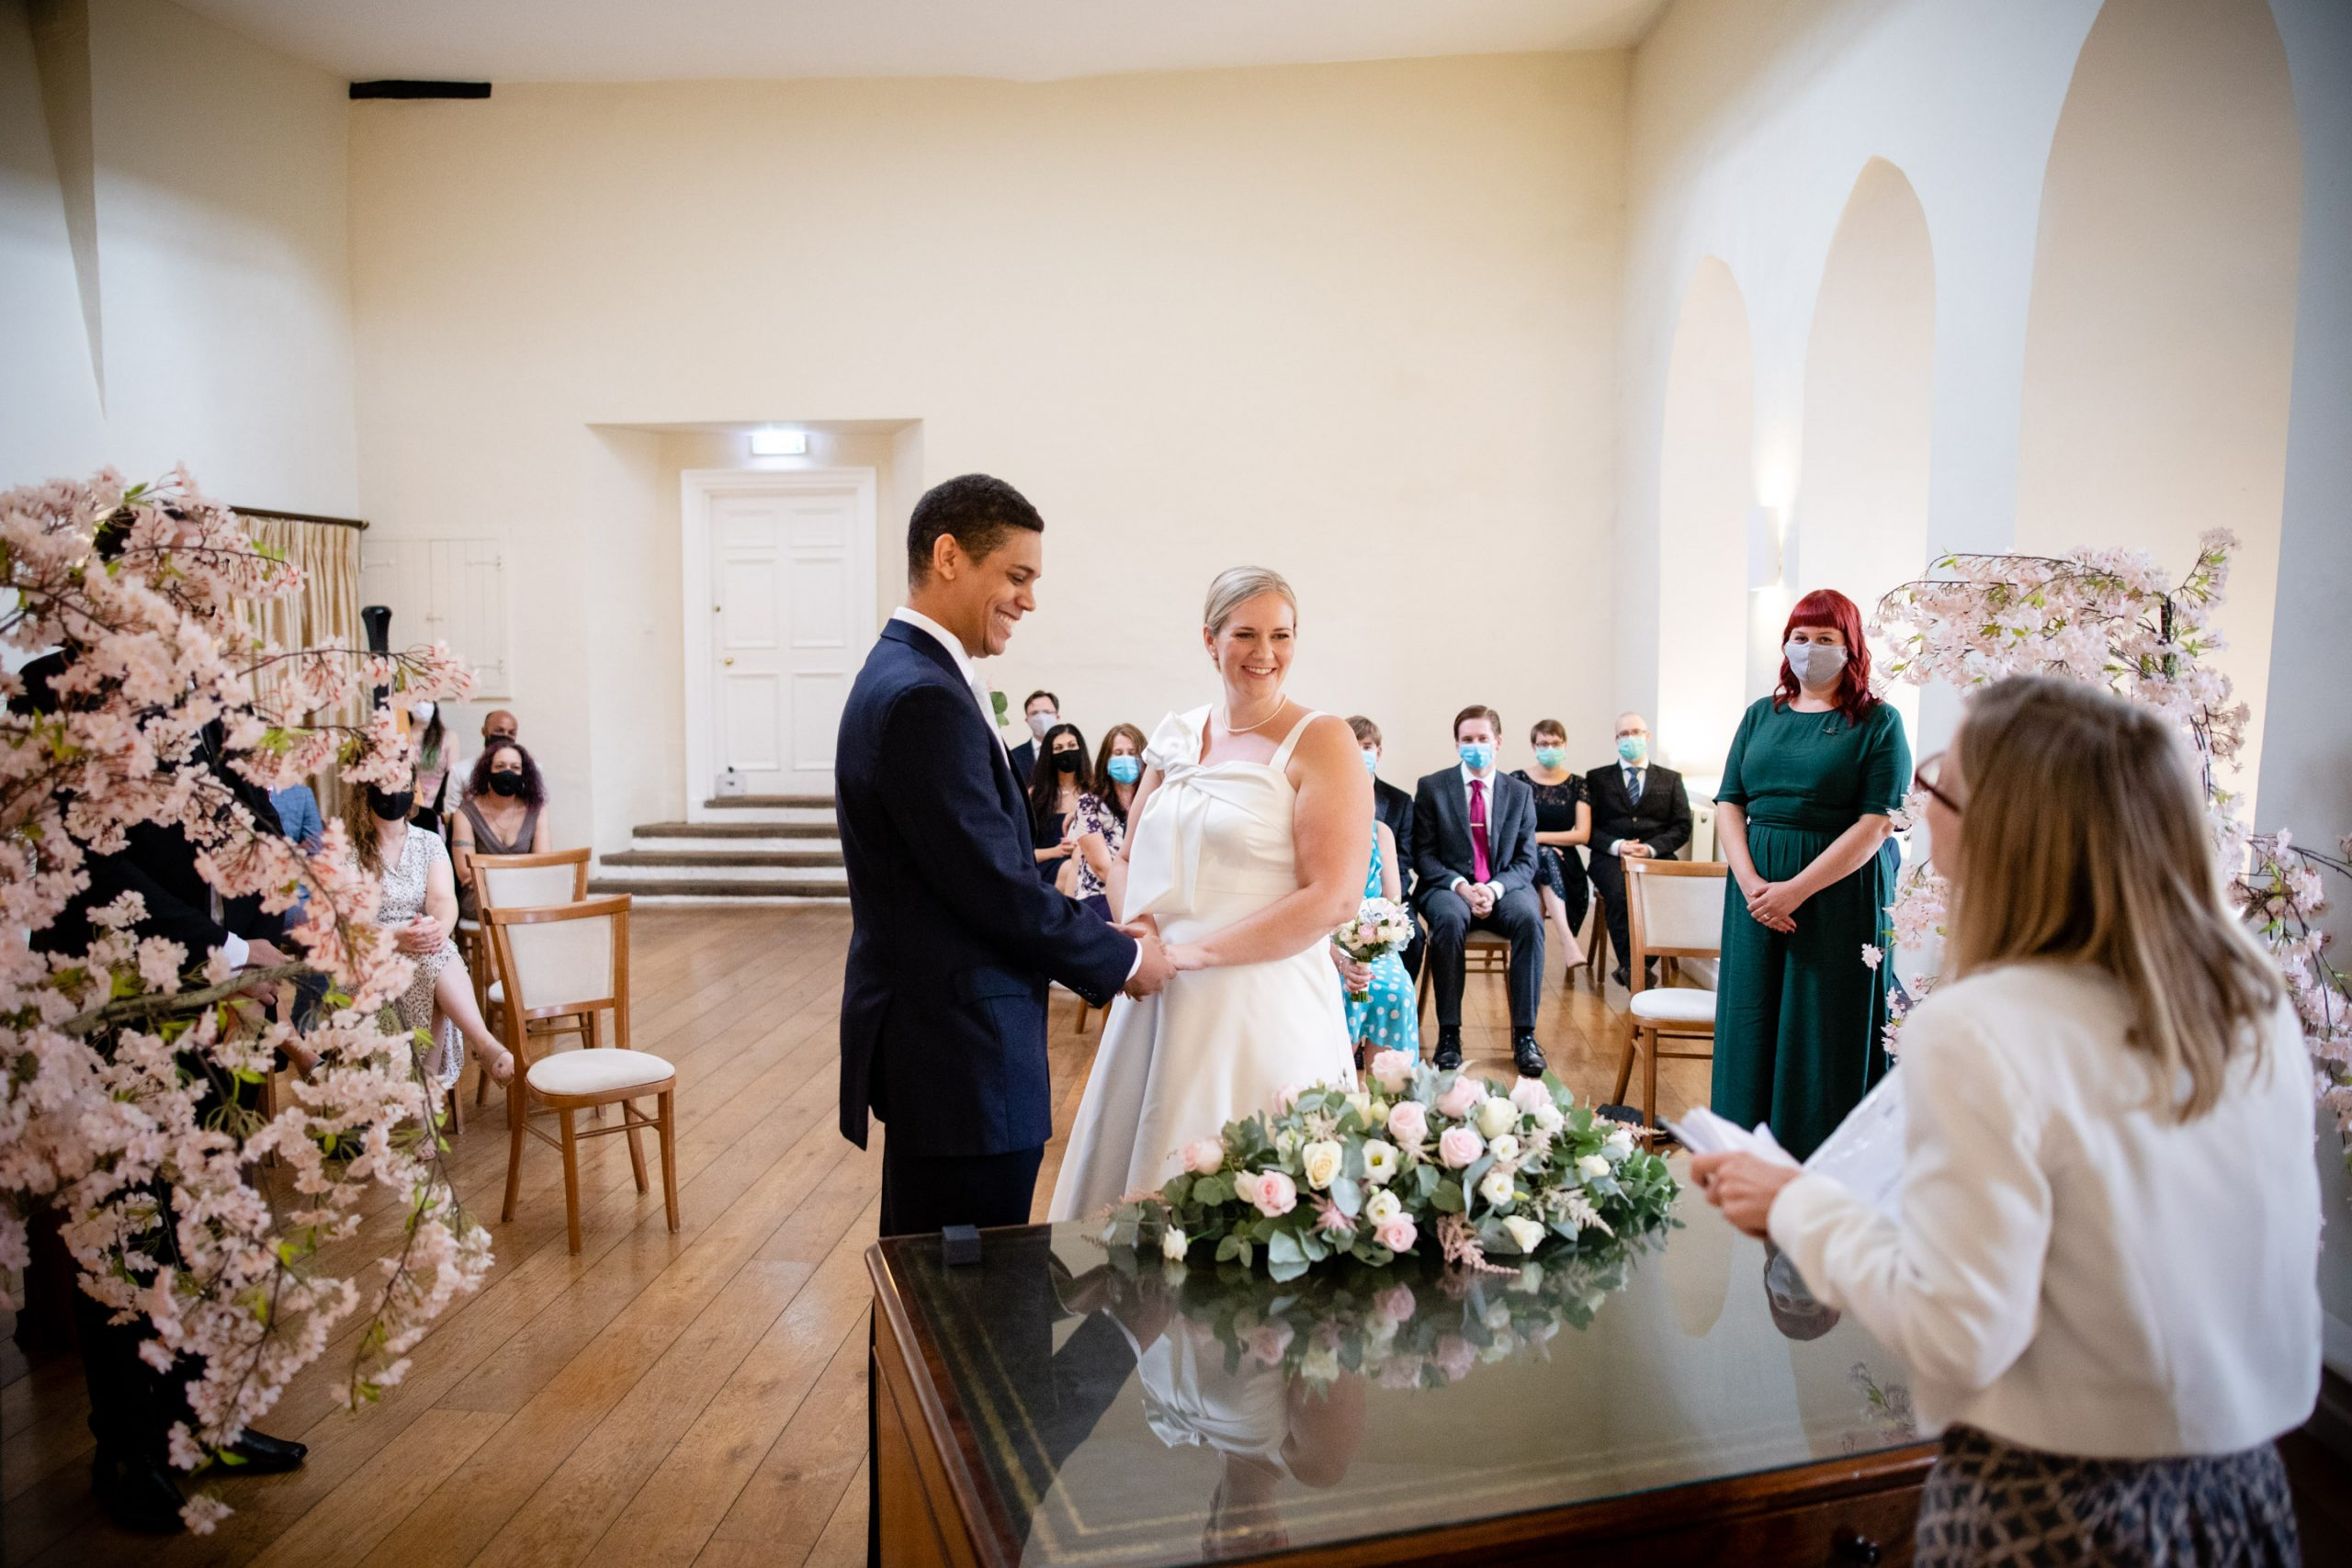 Catherine & Jason's COVID wedding at Farnham Castle taking place in the Lantern Hall.